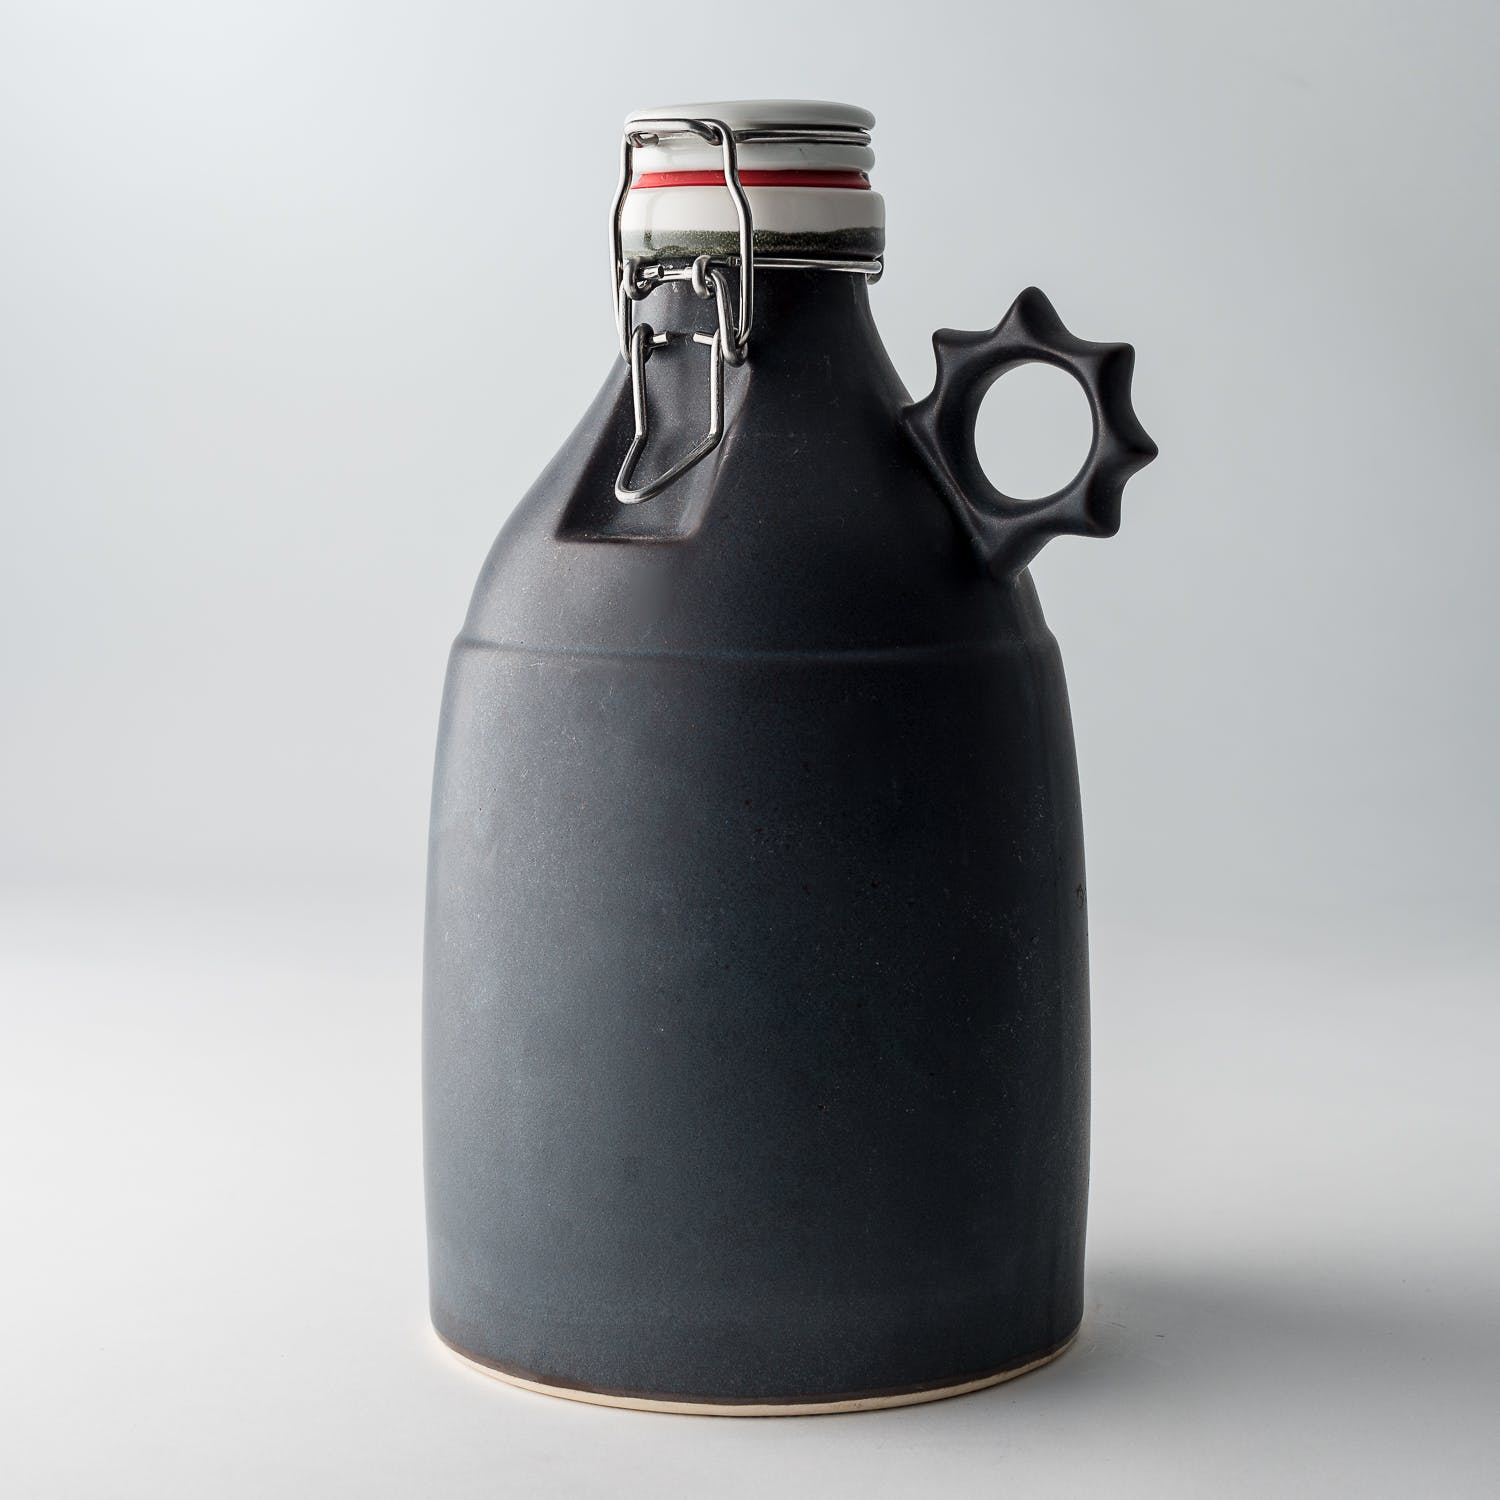 Image of 32 oz. satin grey sprocket growlette from Portland Growler Company